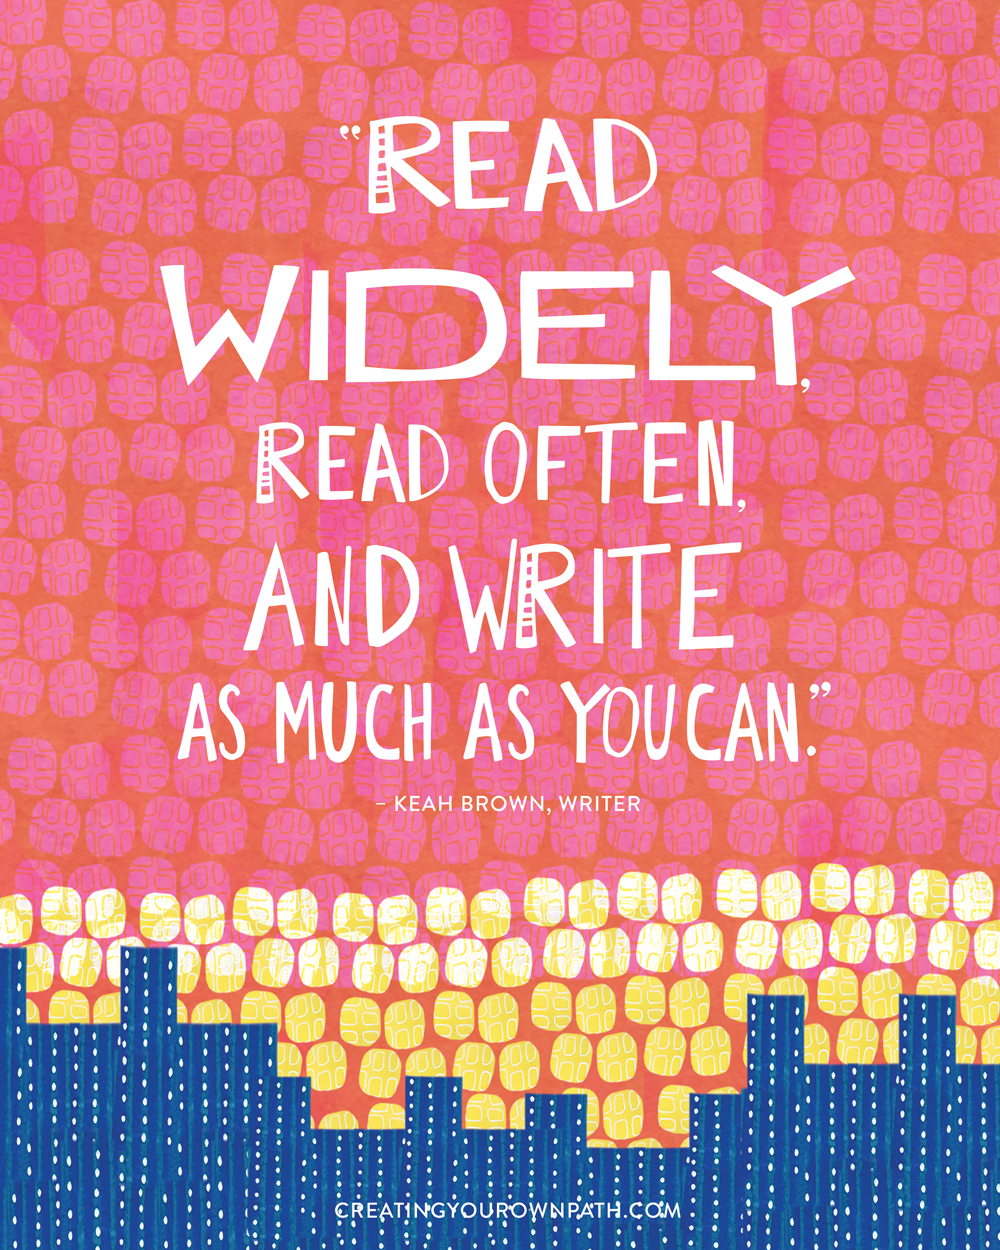 """Read widely, read often, and write as much as you can."" — Keah Brown, Writer // Art by  Melanie Biehle"